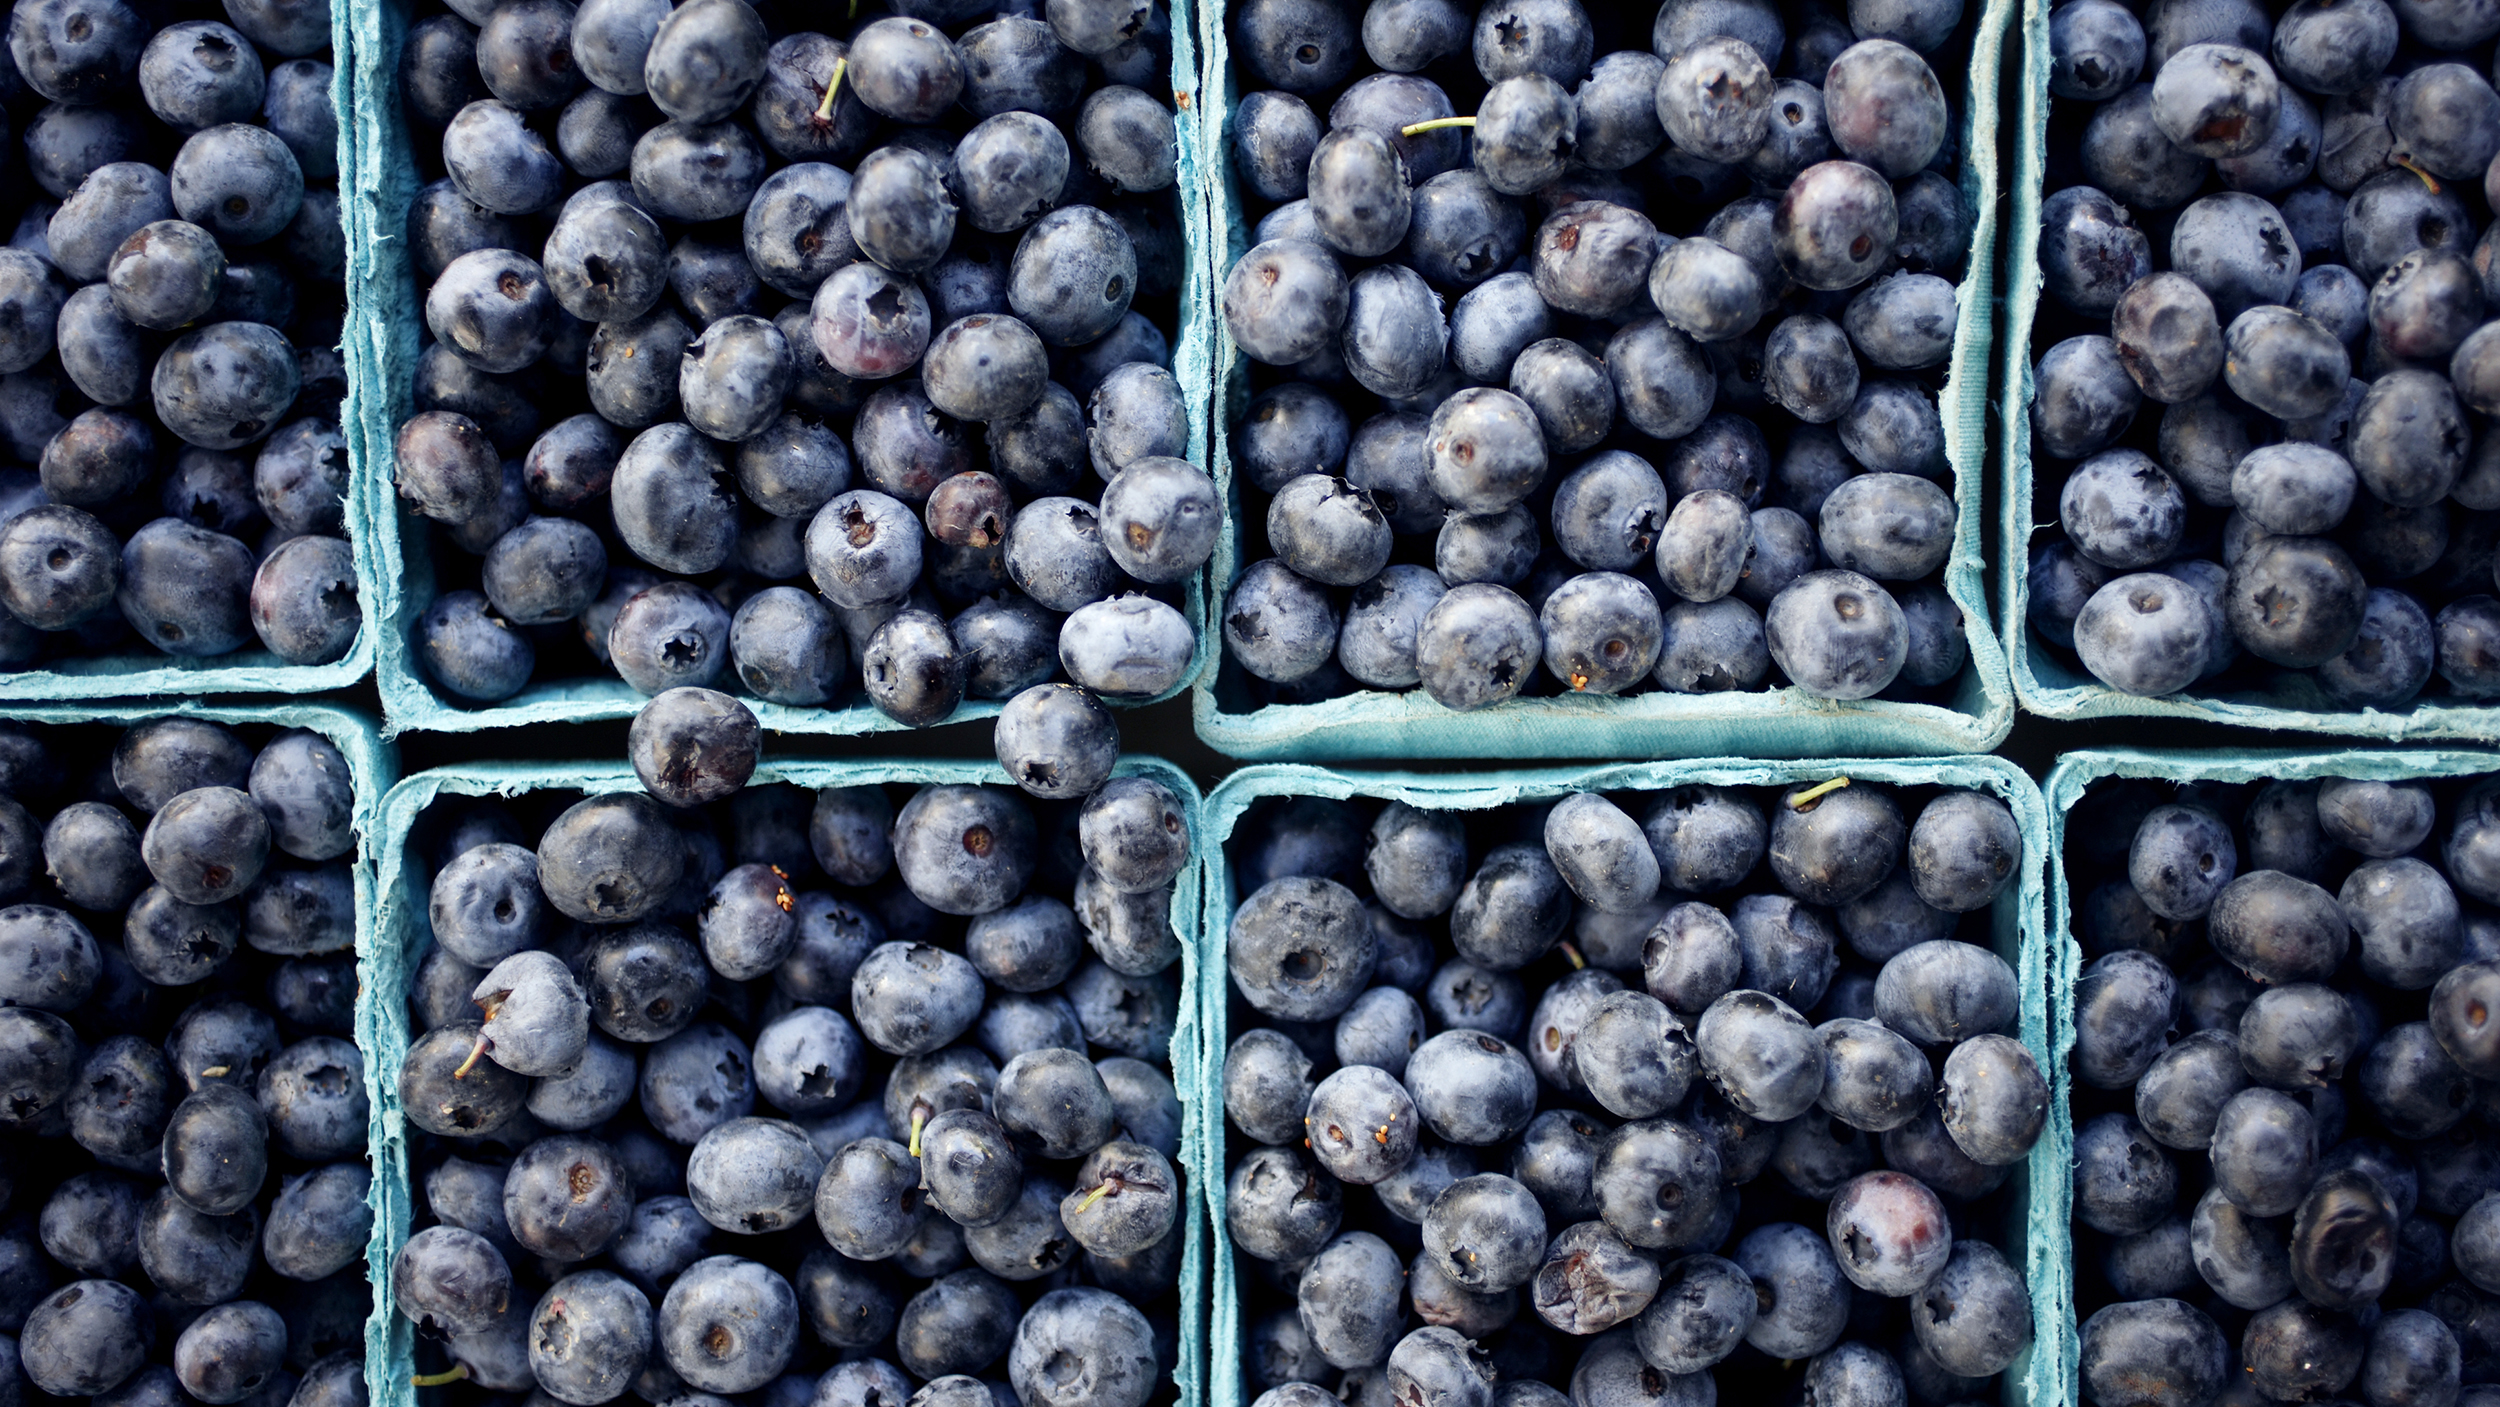 Wild blueberries may boost memory and reduce inflammation ...